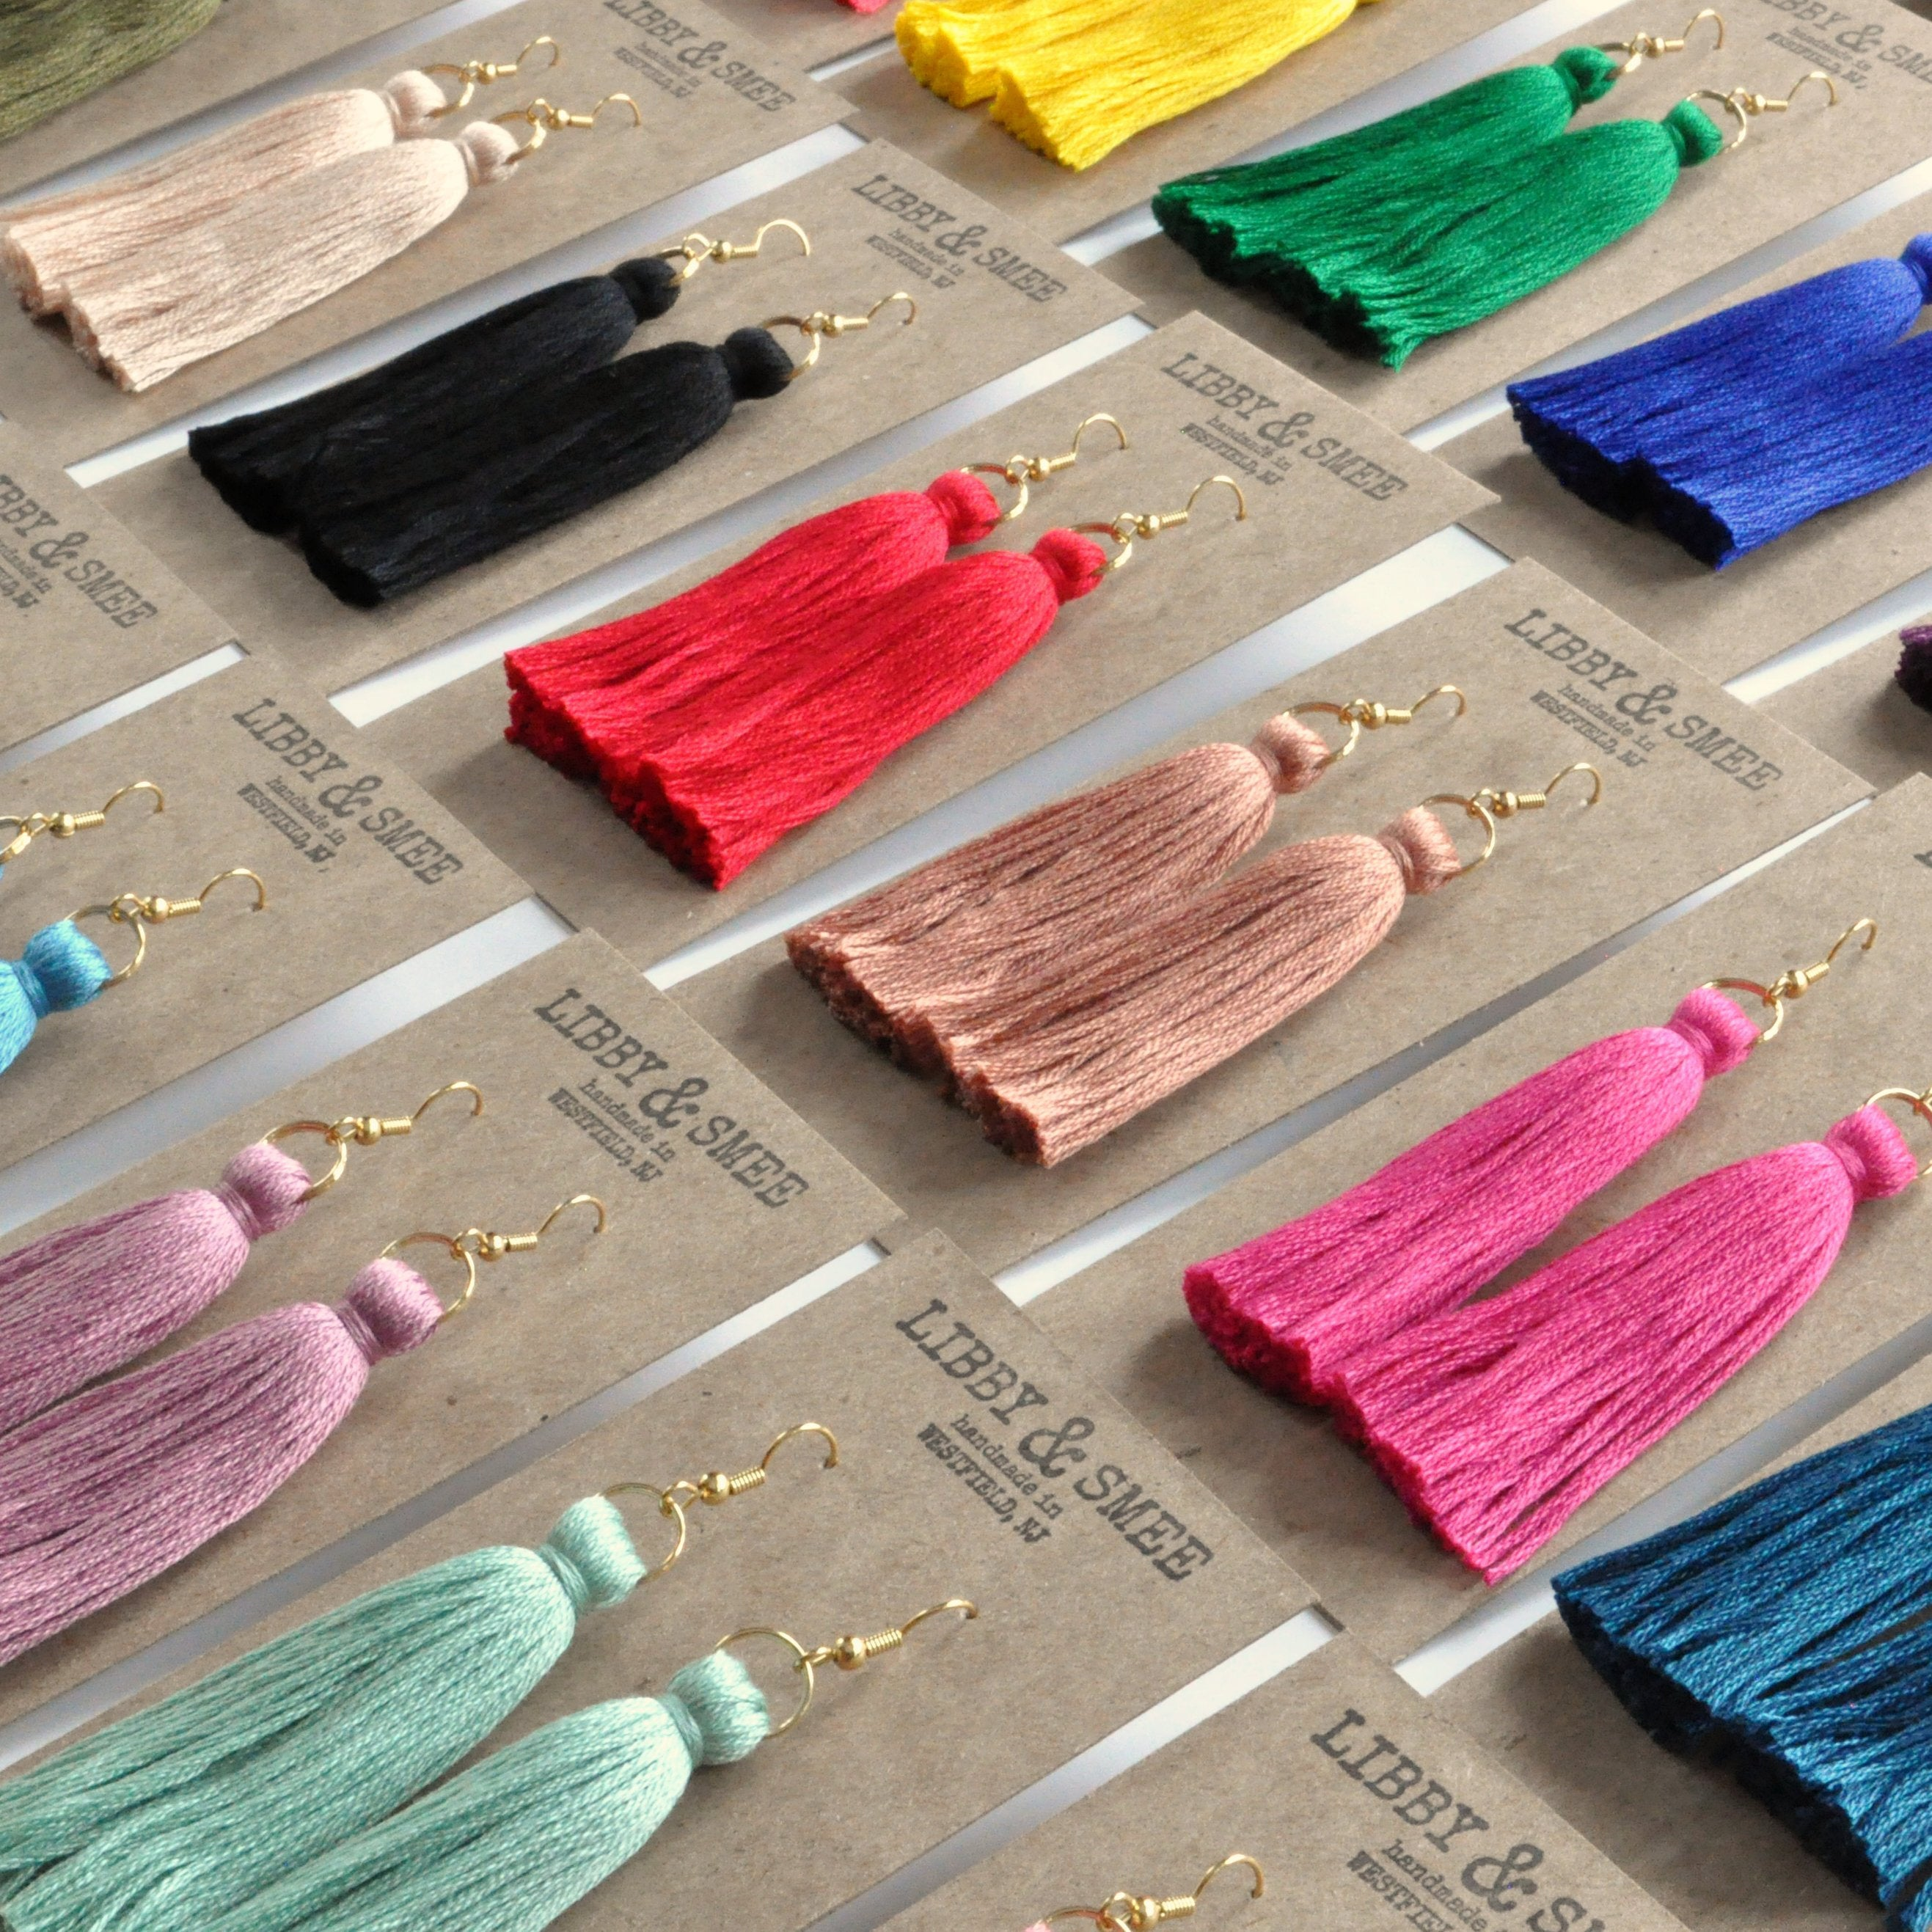 Libby & Smee Tassel Earrings side angle, several colors on kraft earring cards, still life